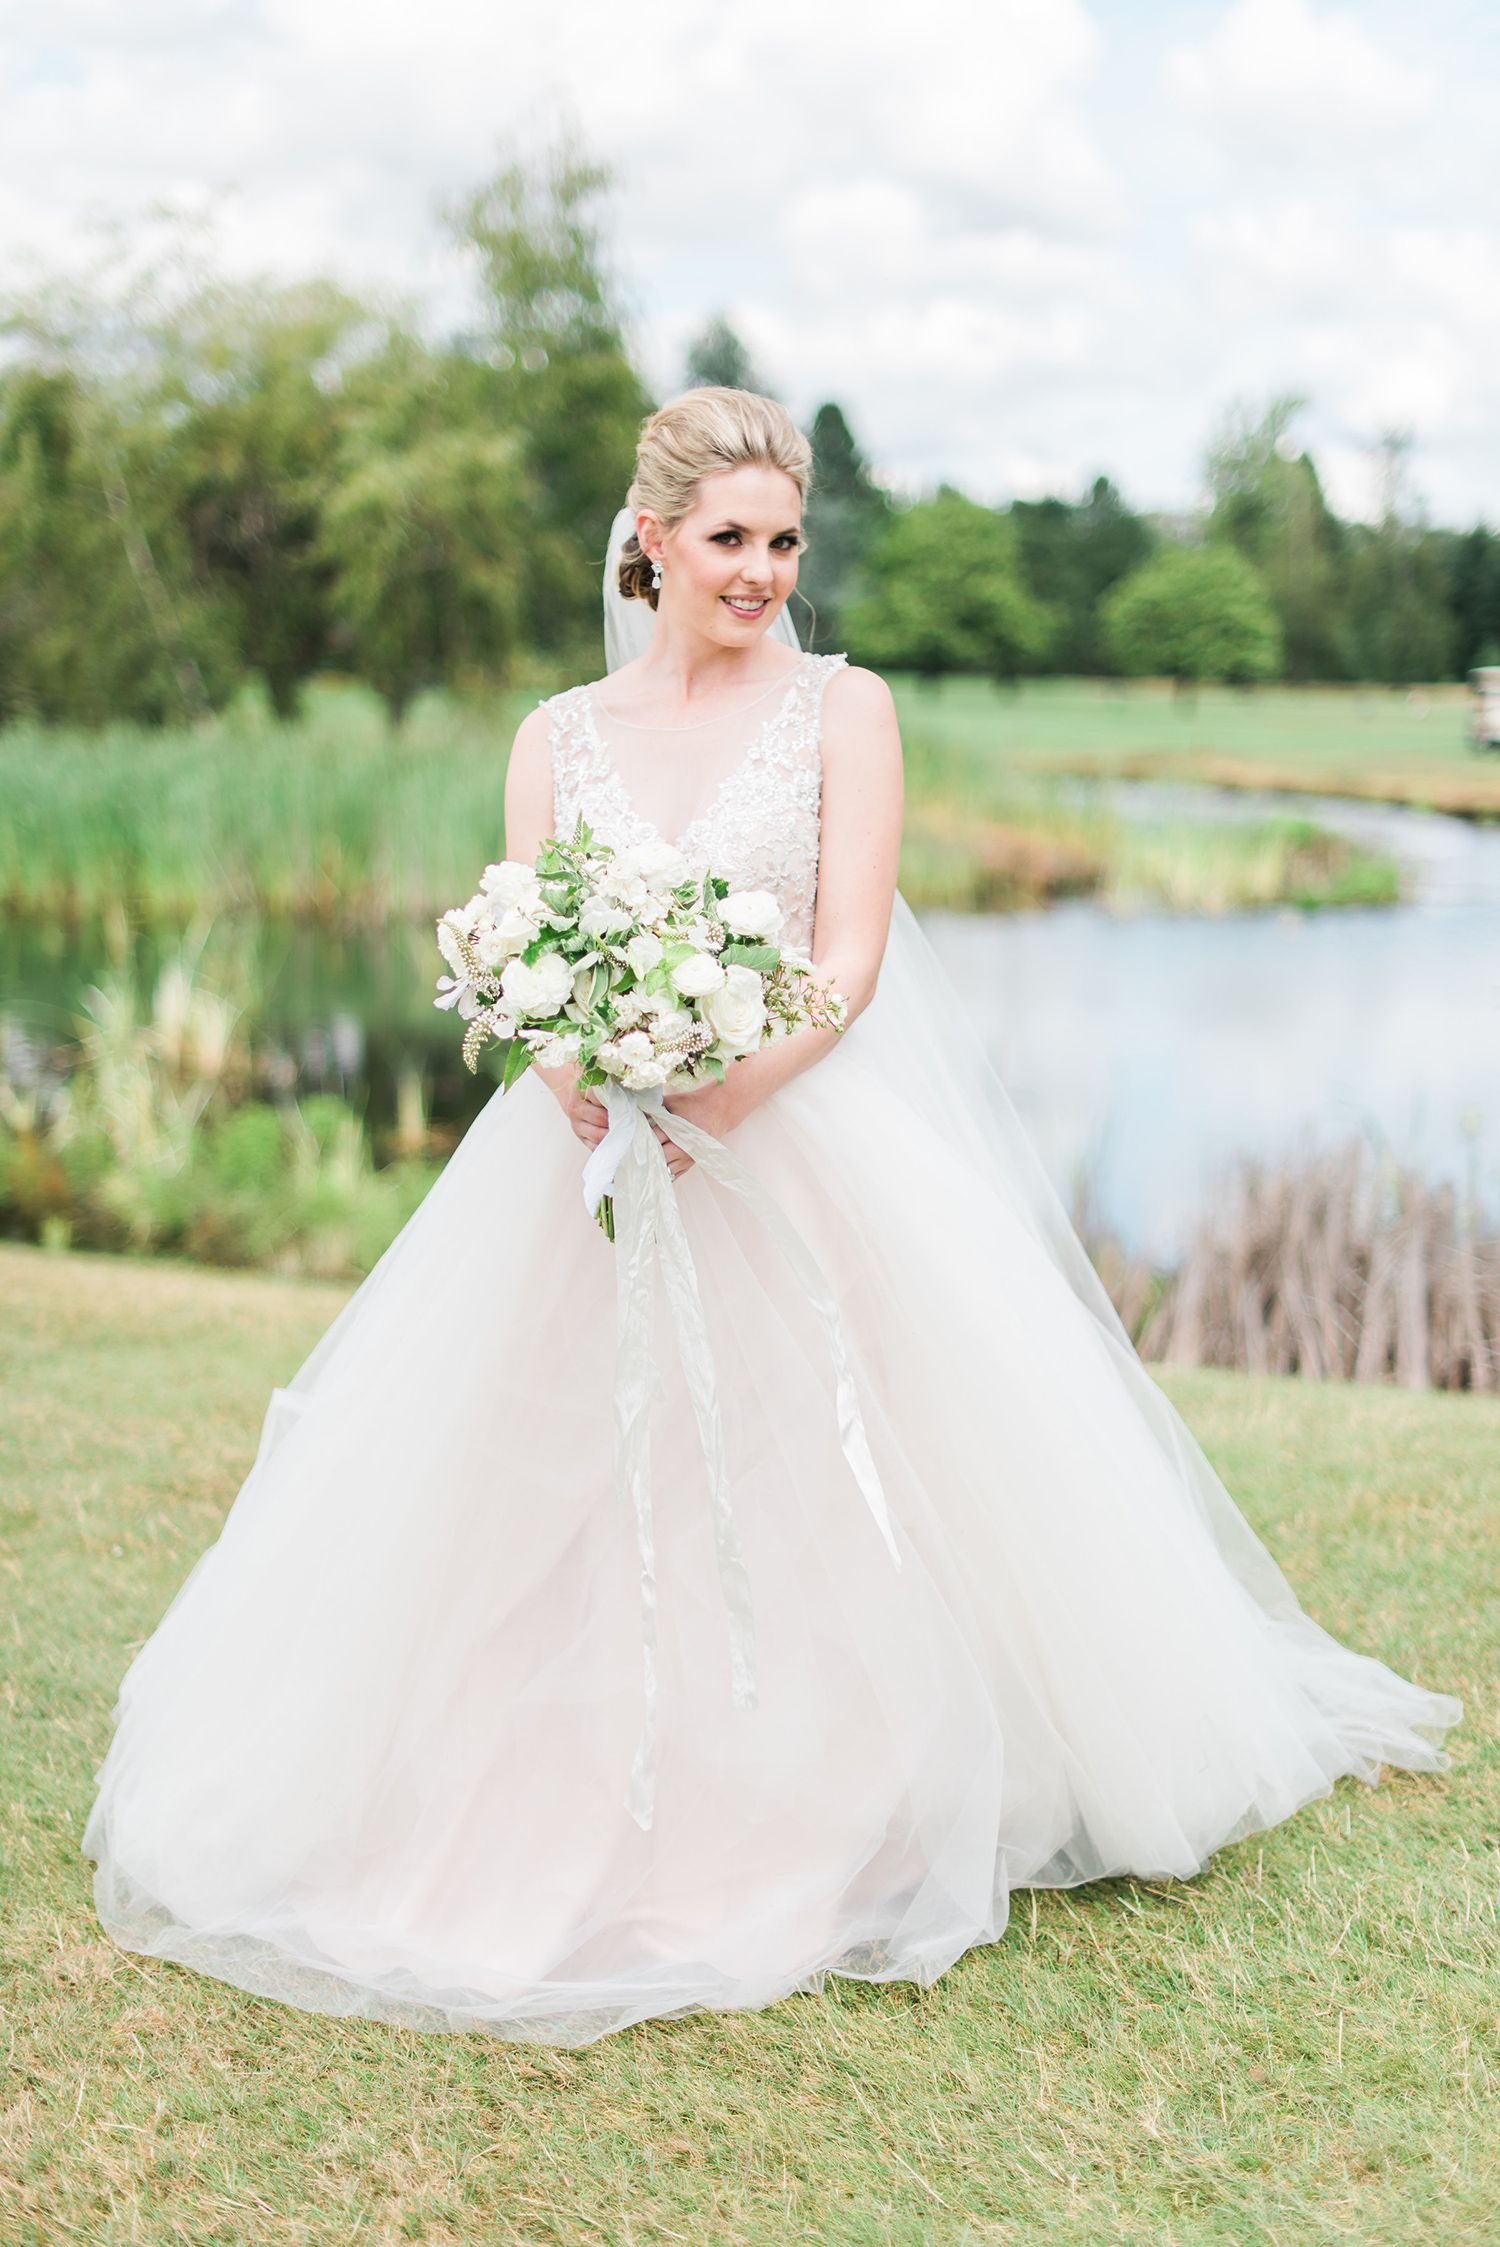 Sparkling sapphire blue wedding at the illahe hills country club